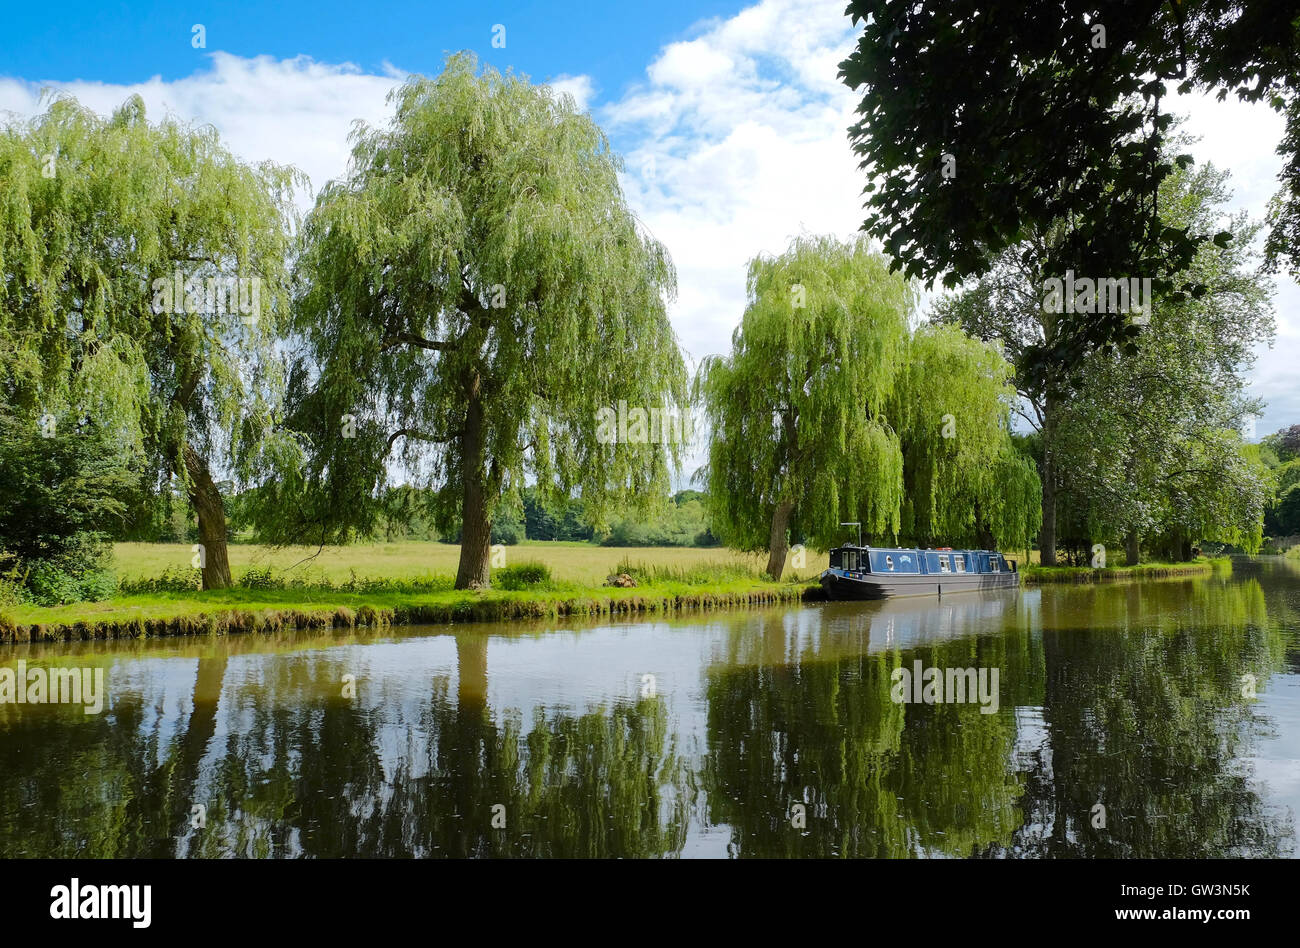 Beautiful view of a Longboat on still reflective waters on the River Wey in Guildford in Surrey. - Stock Image